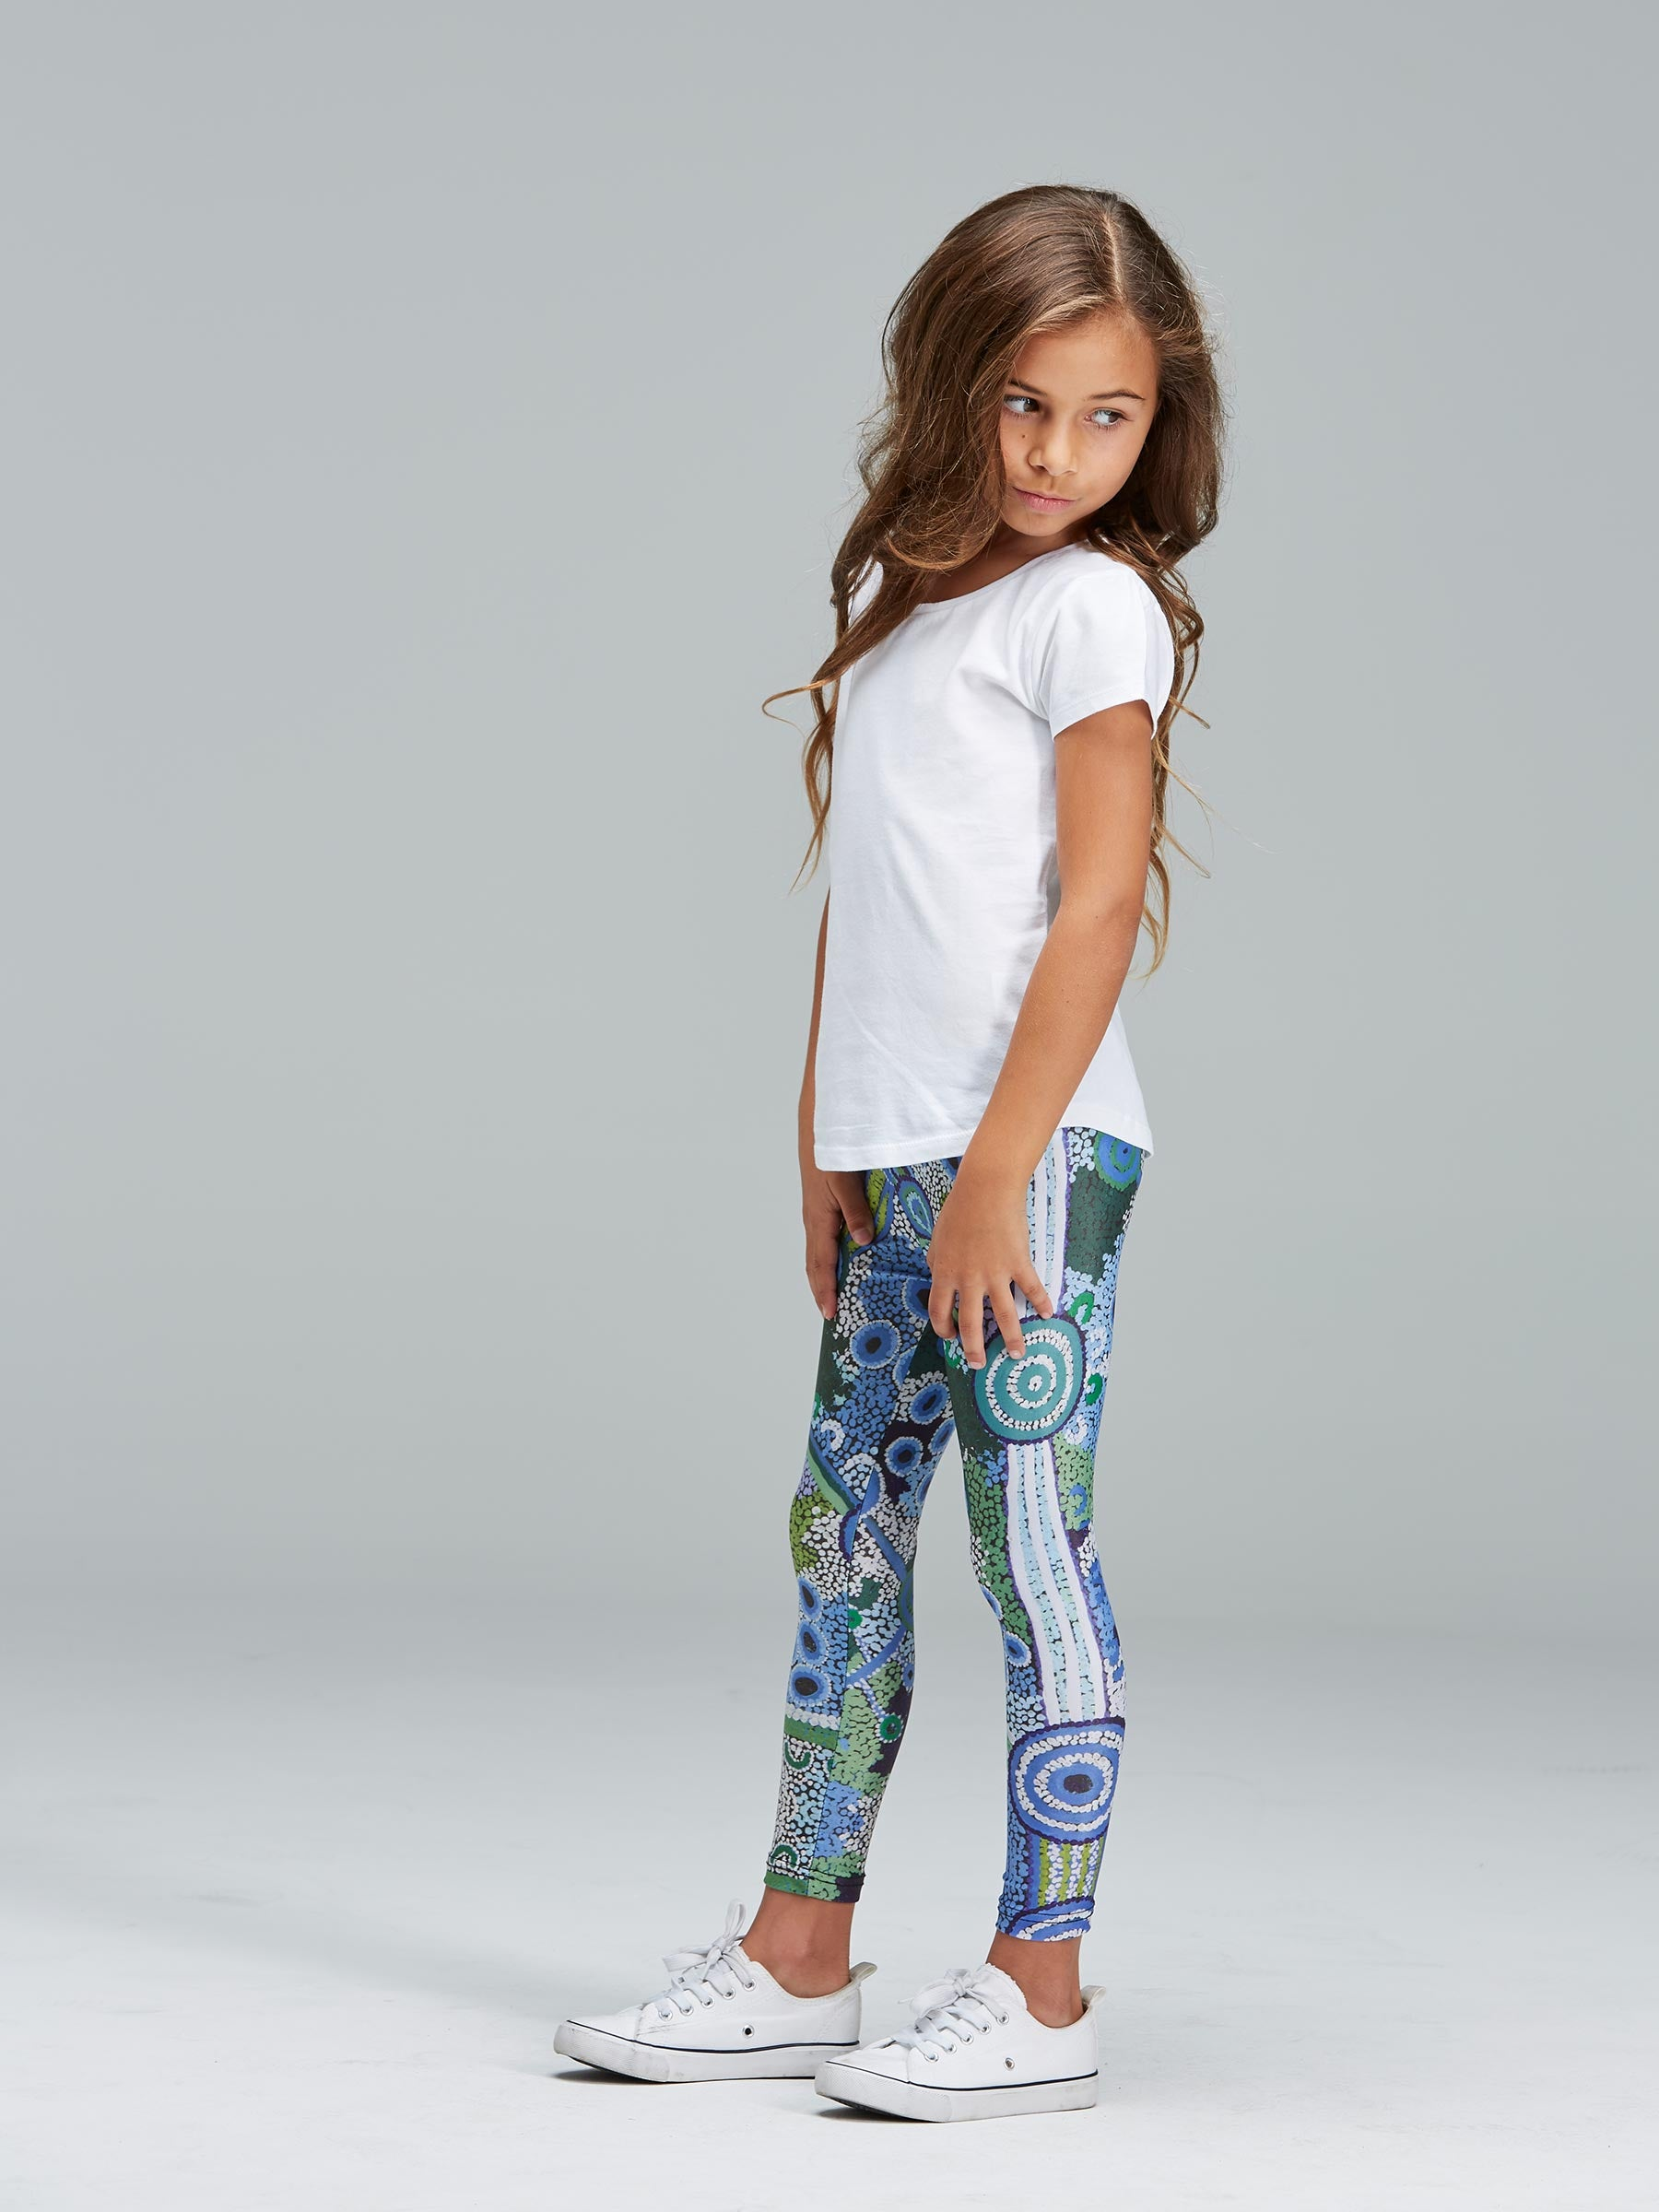 Coastal Dreaming kids' leggings